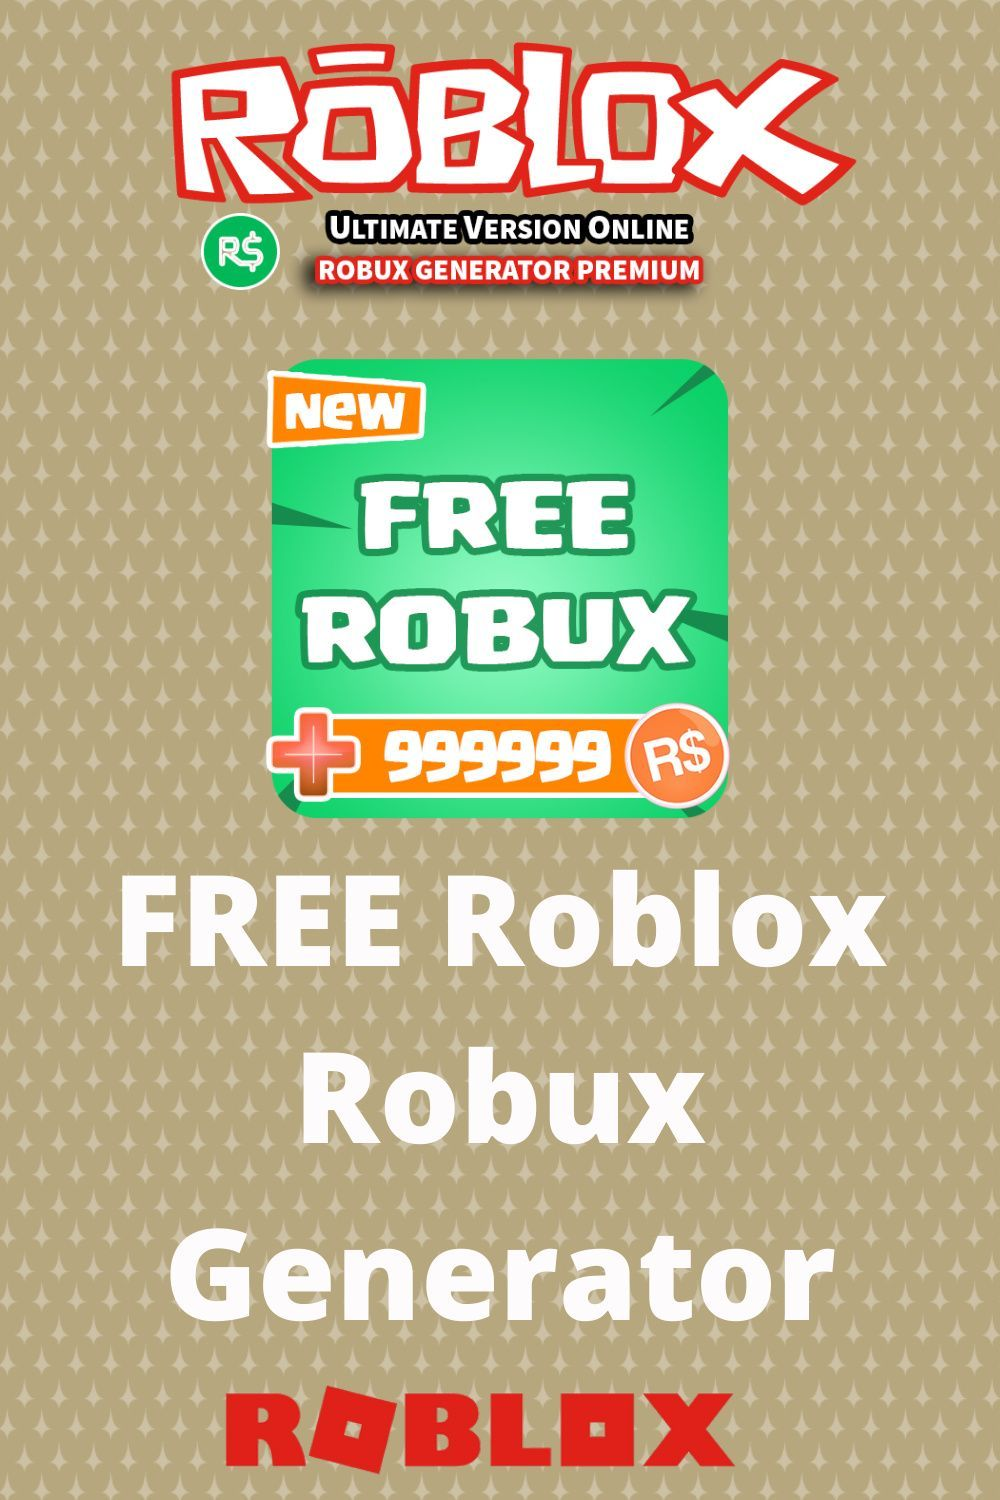 Free Robux Generator iOS, Android, PC in 2020 Roblox